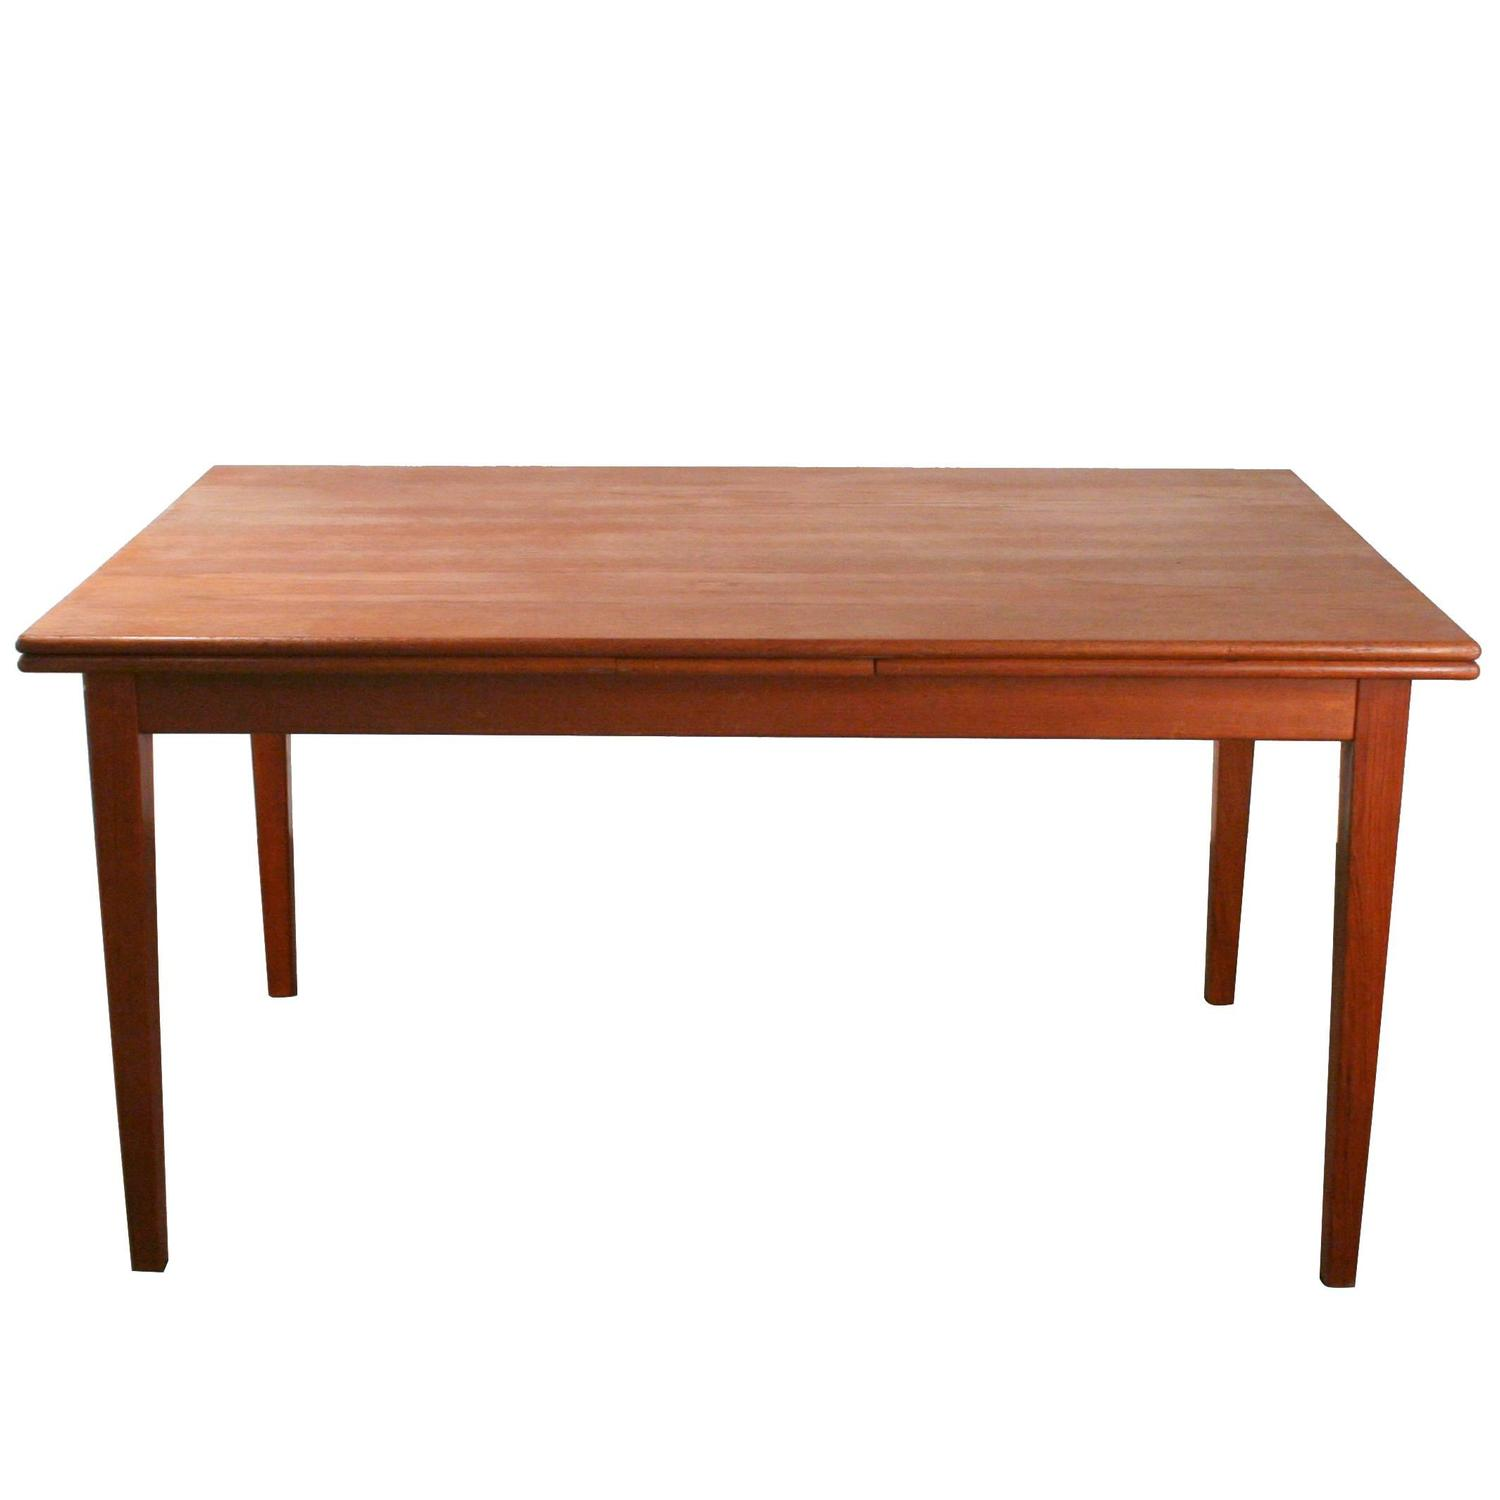 Vintage Danish Teak Dining Table For Sale at 1stdibs : IMG2441orgz from www.1stdibs.com size 1500 x 1500 jpeg 55kB